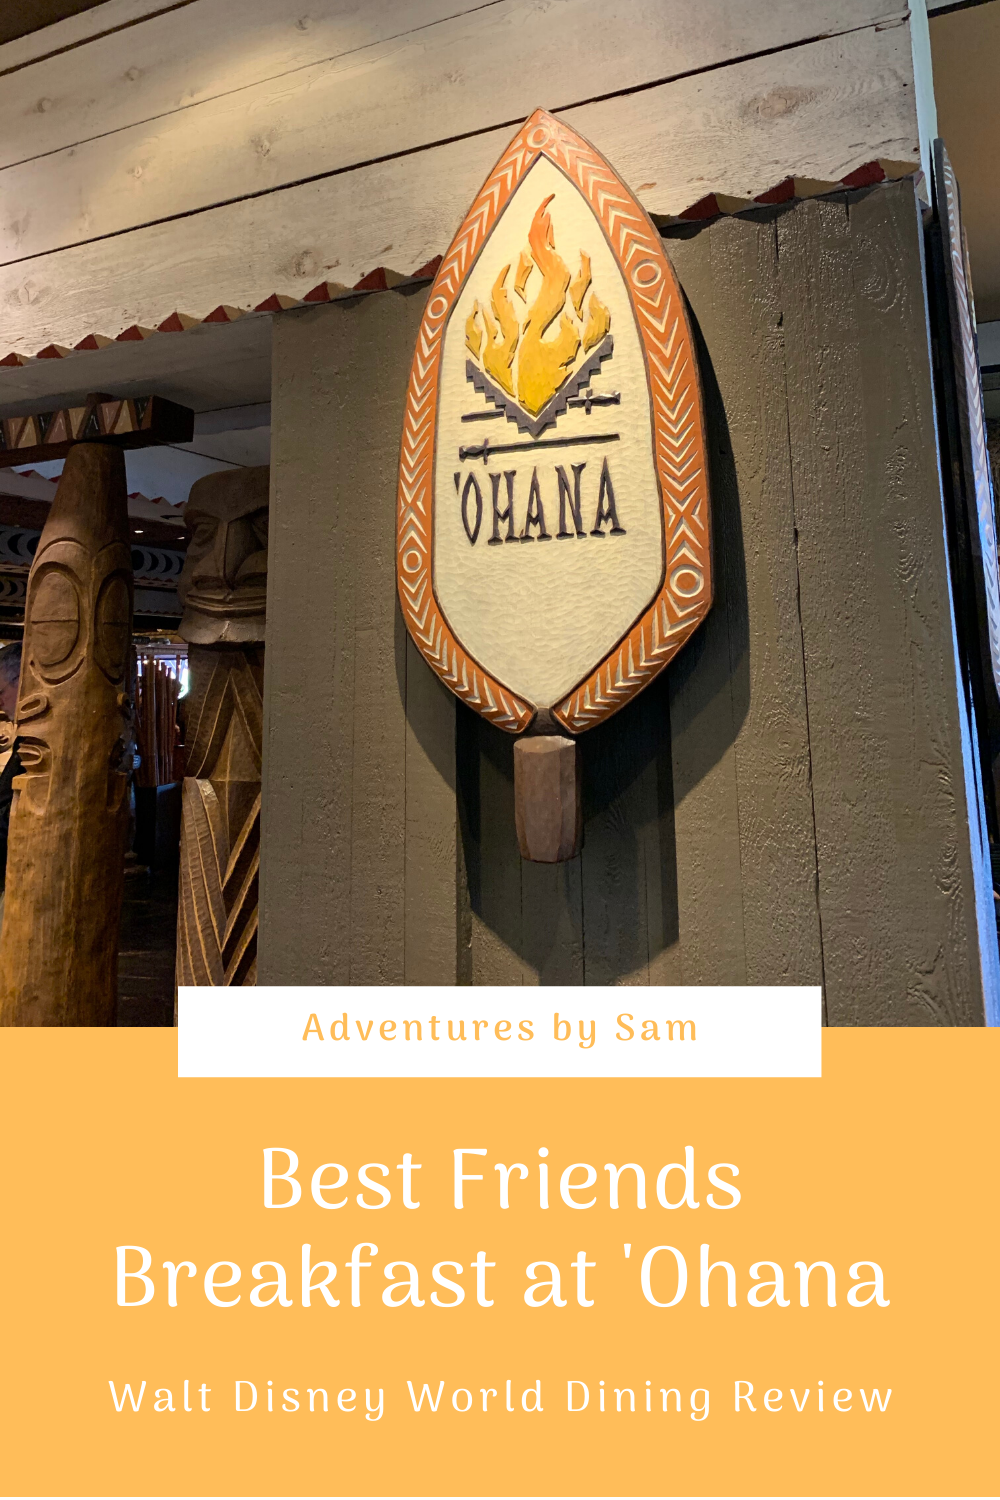 Dining Review: 'Ohana Best Friends Breakfast Featuring Lilo & Stitch (Thumbnail)